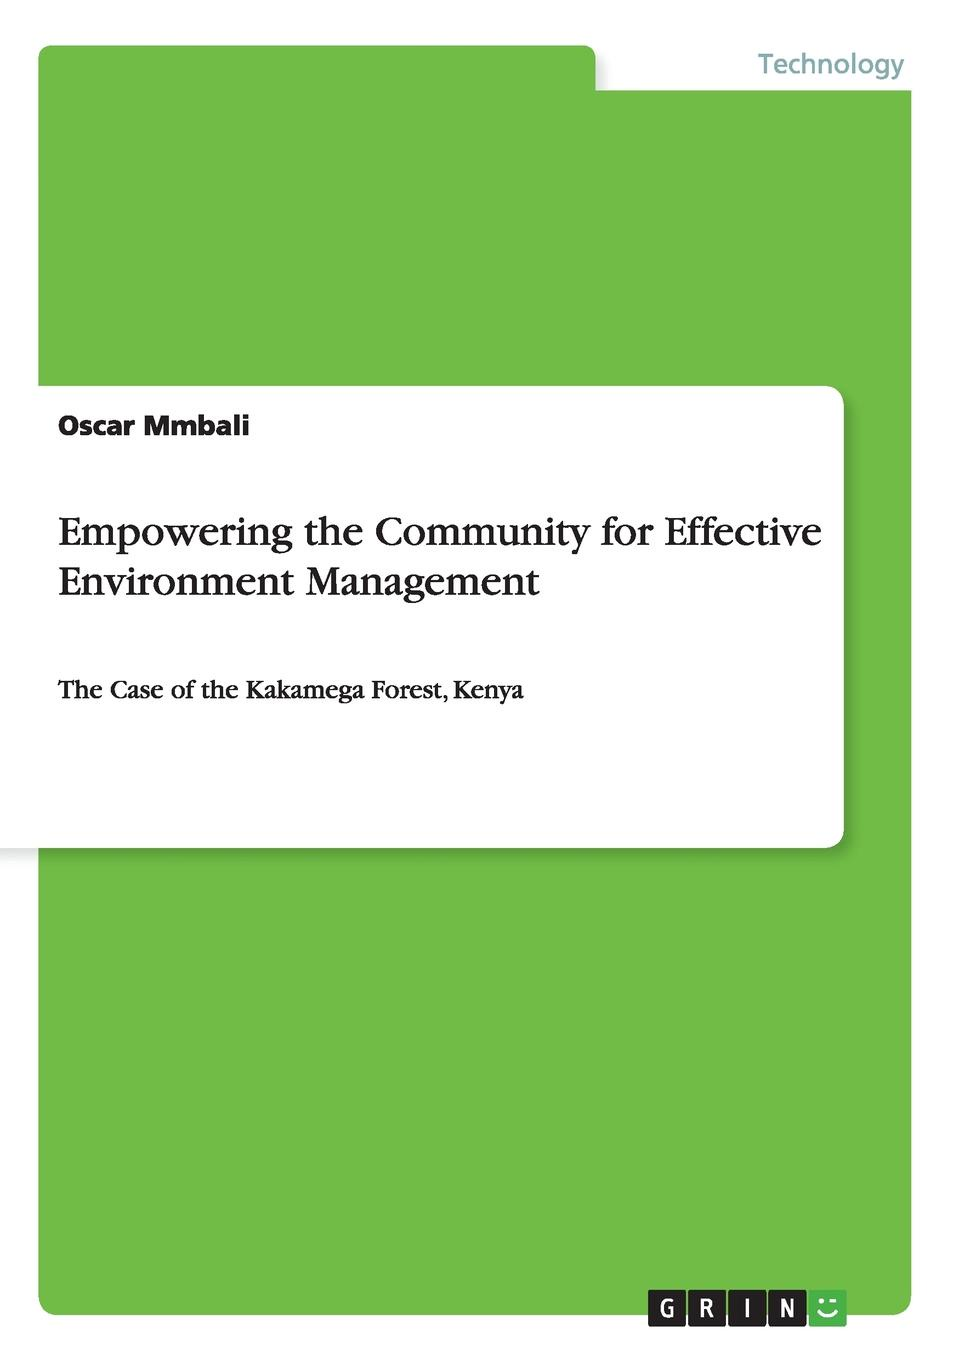 Oscar Mmbali Empowering the Community for Effective Environment Management dmitri makarov islam and development at micro level community activities of the islamic movement in israel